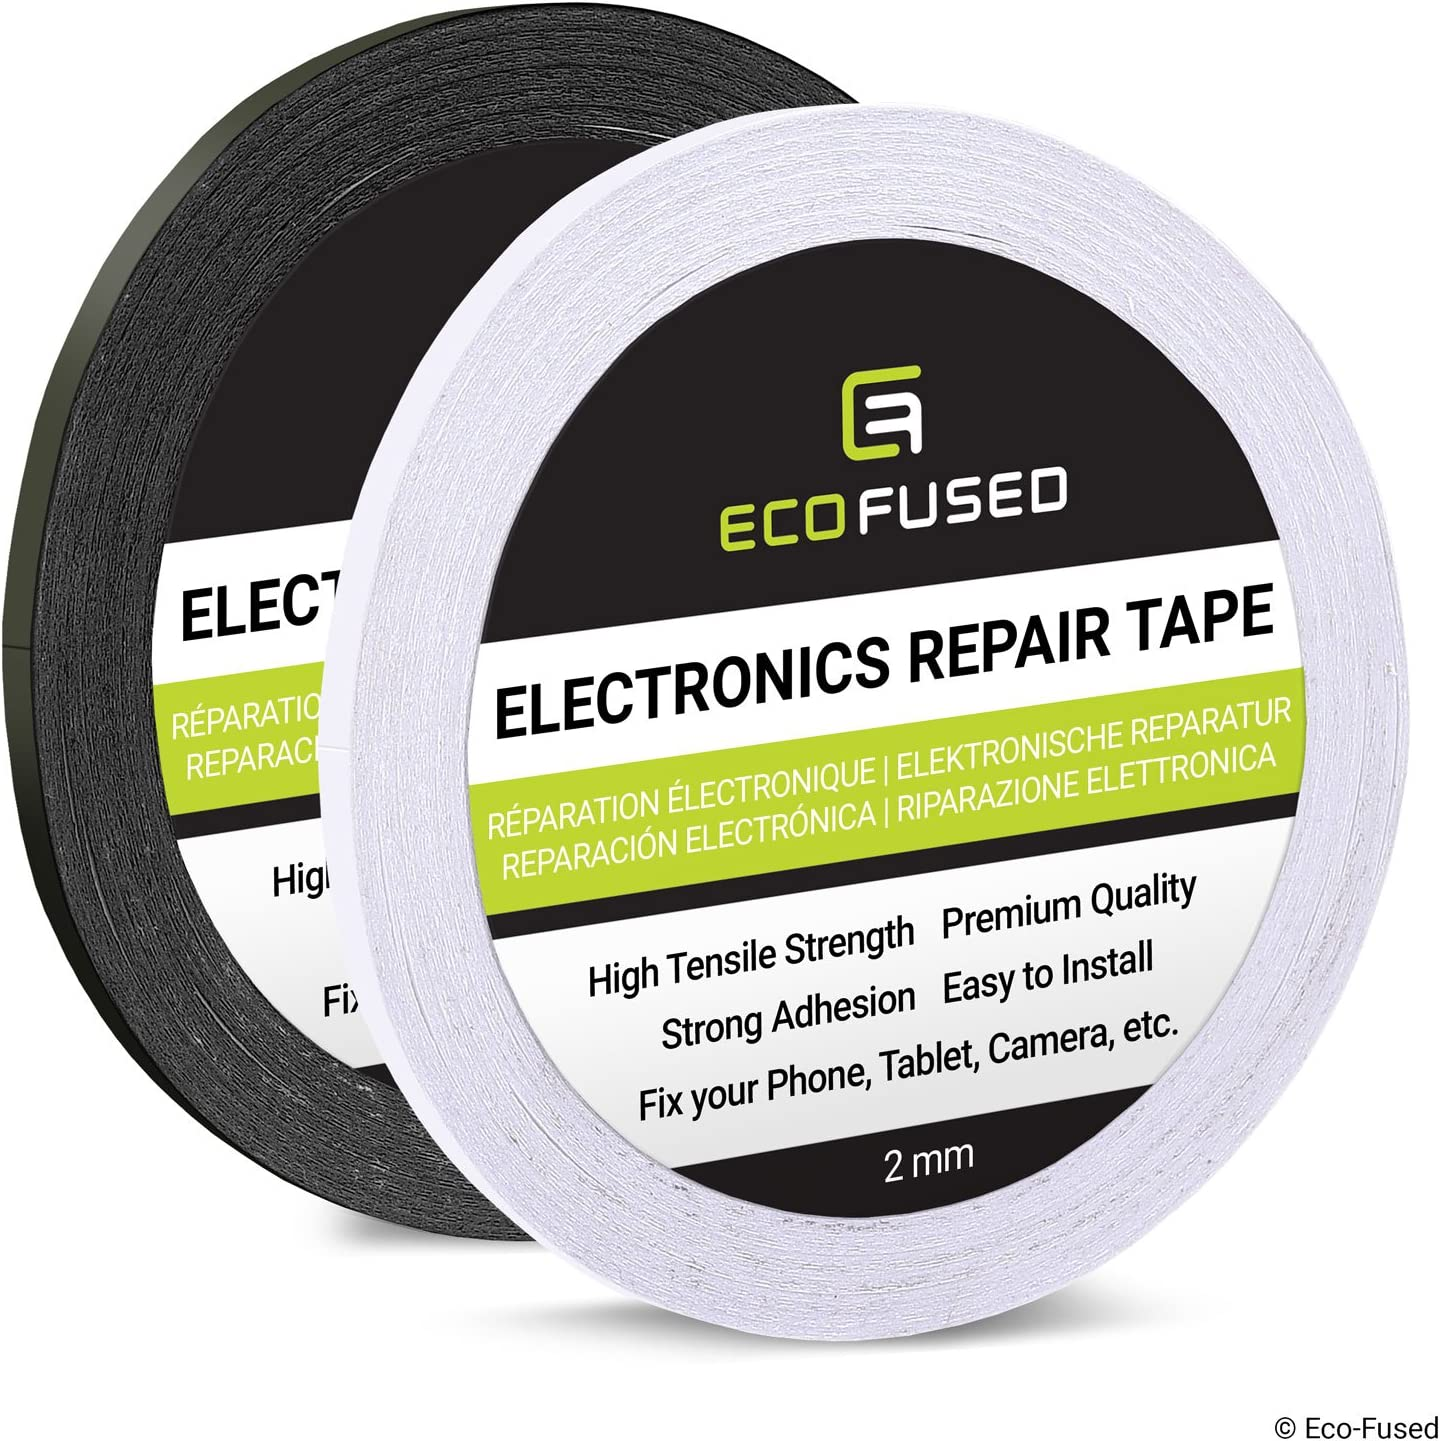 Eco-Fused Adhesive Sticker Tape for Use in Cell Phone Repair - 2 Rolls of Double Sided 2mm Tape - Plus 1 Eco-Fused Microfiber Cleaning Cloth (Black and White)